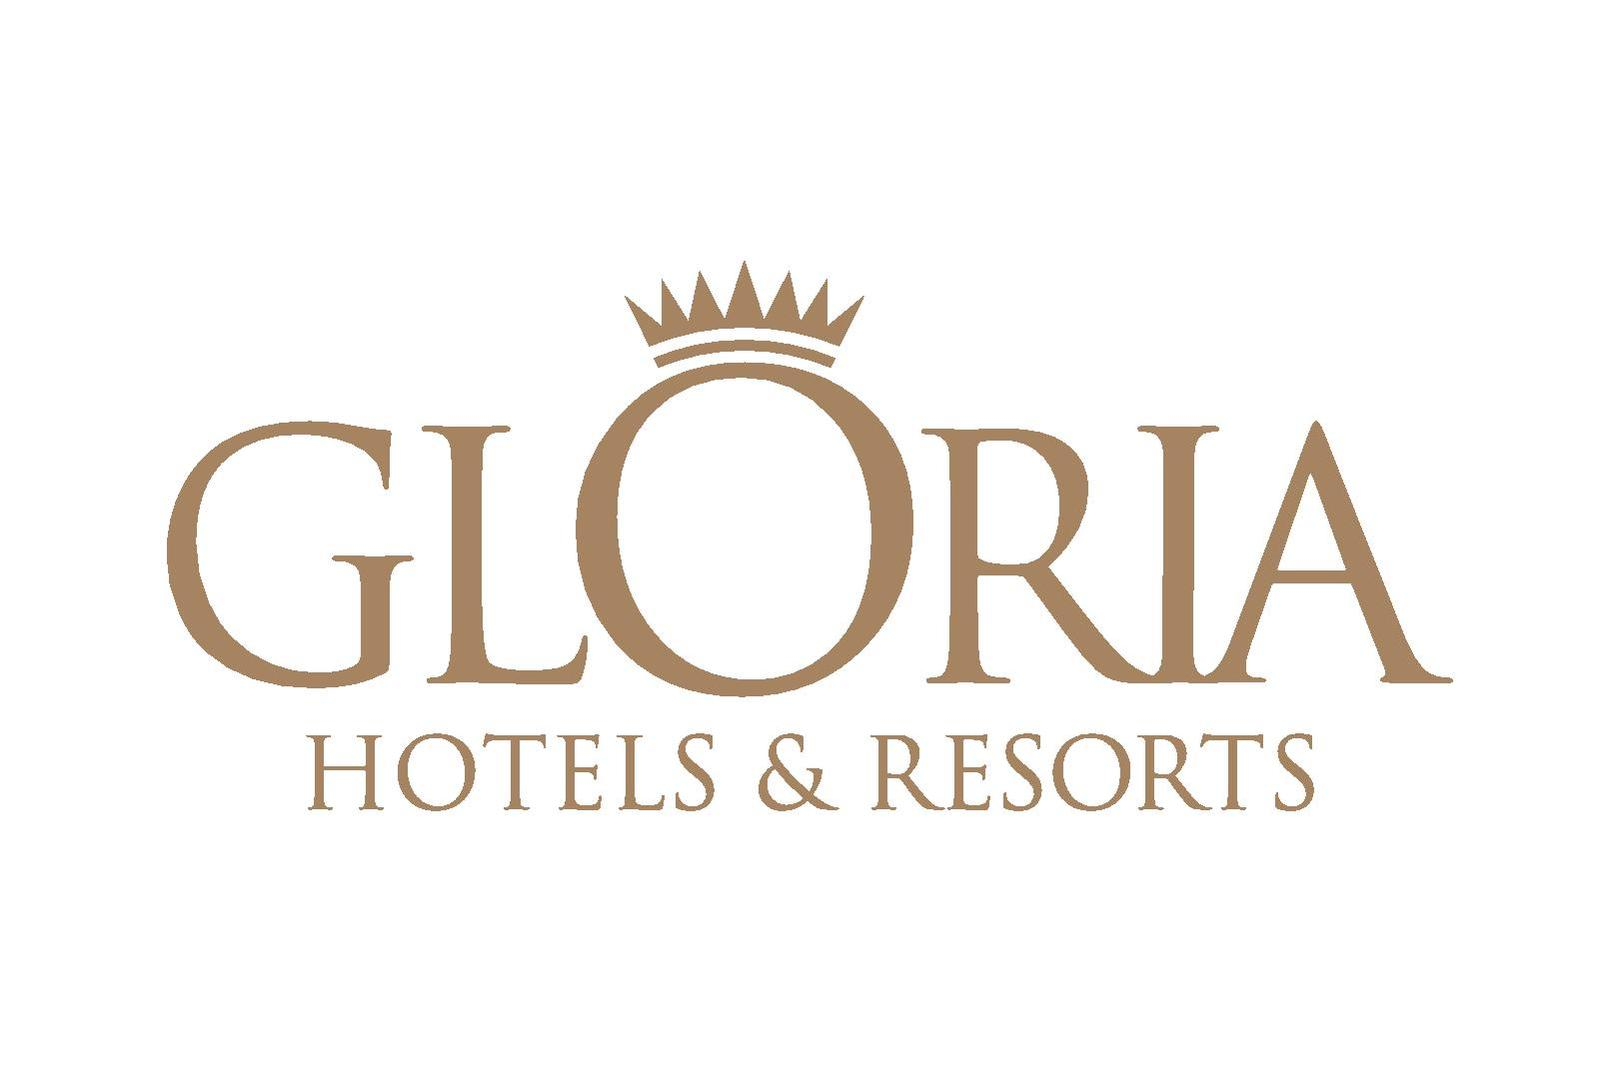 New website for hotel group